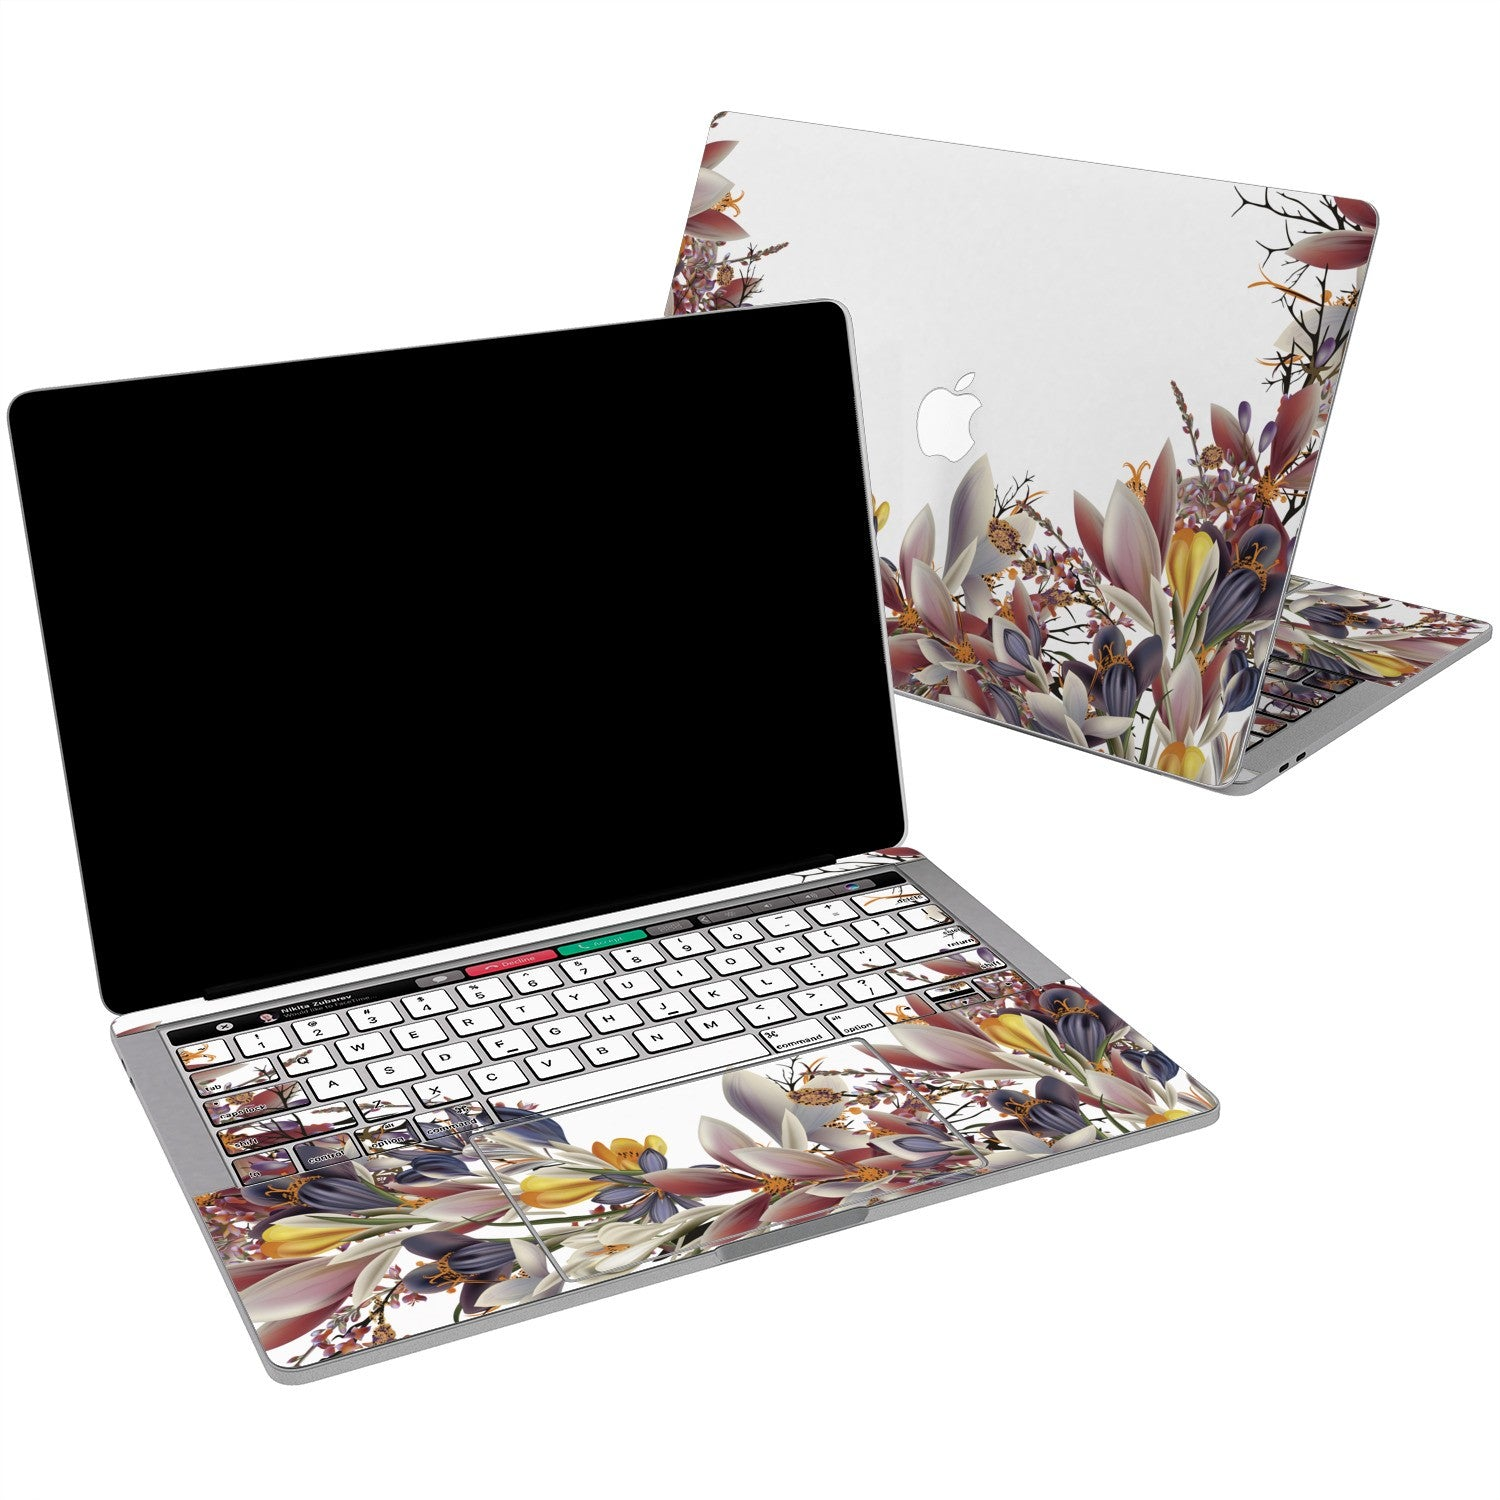 Lex Altern Vinyl MacBook Skin Crocus Flowers for your Laptop Apple Macbook.